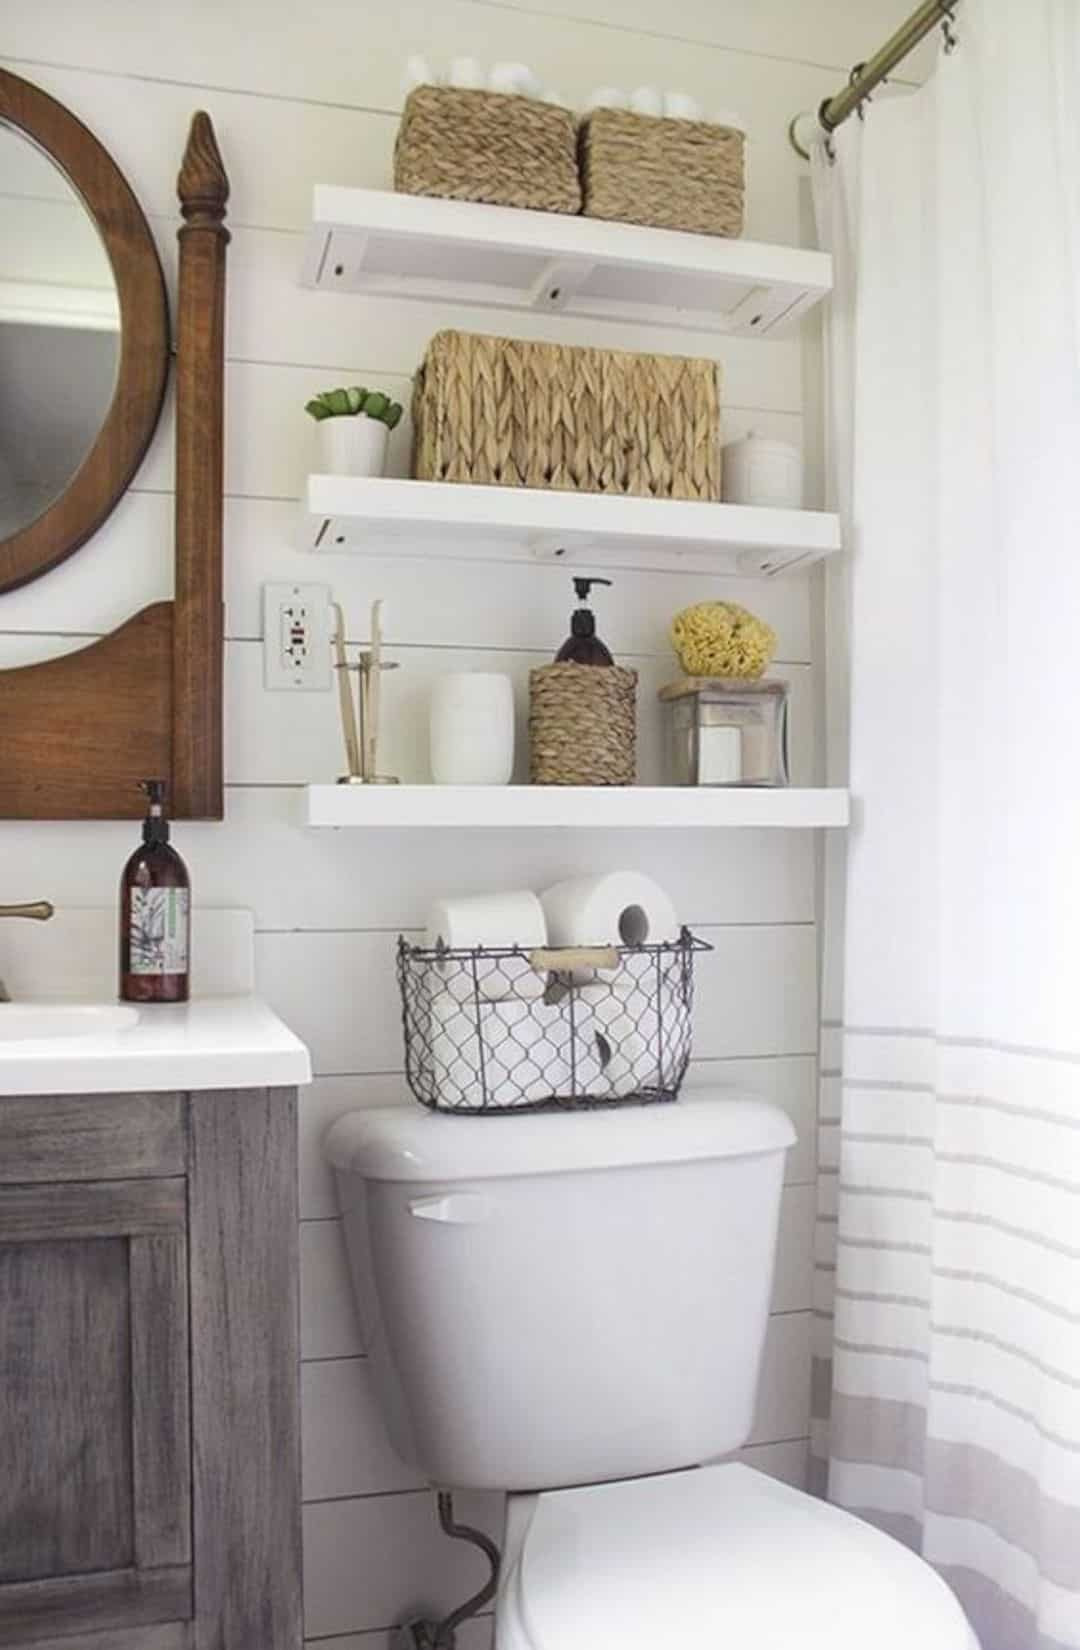 Bathroom Decorating Idea Best Of 17 Awesome Small Bathroom Decorating Ideas